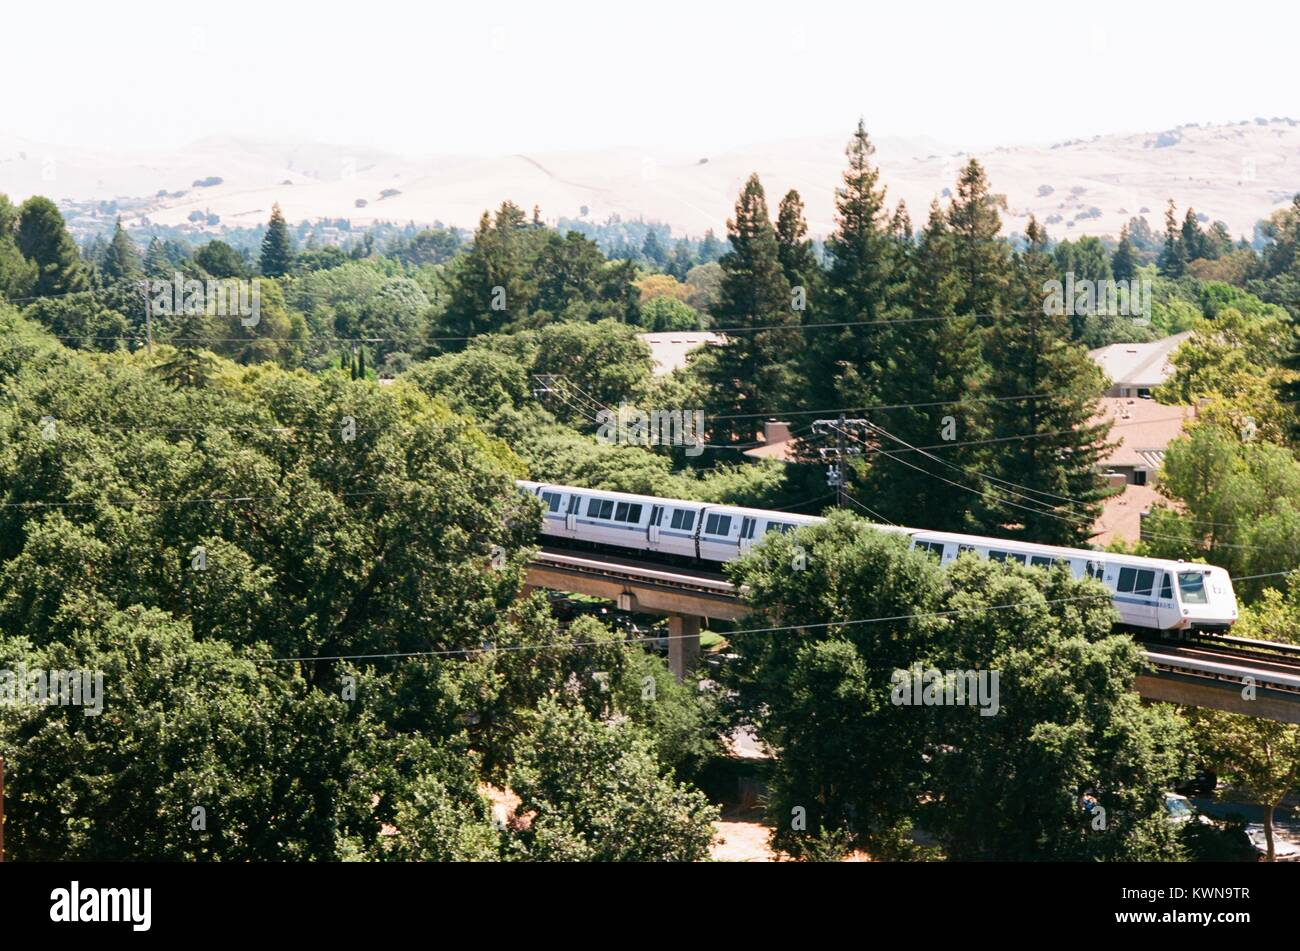 A Bay Area Rapid Transit (BART) train is seen passing through trees and the Diablo Foothills in downtown Walnut - Stock Image